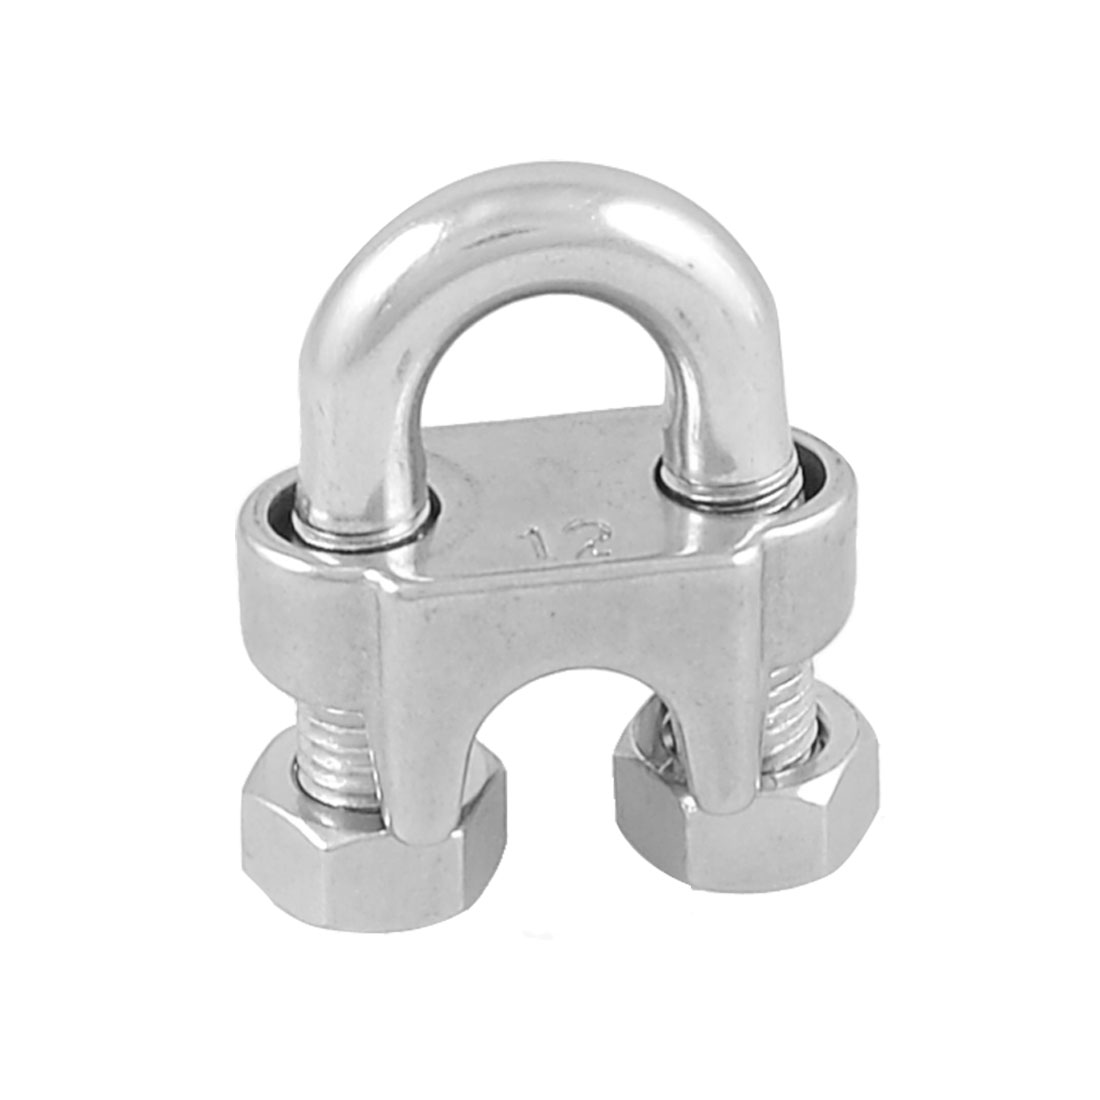 "Stainless Steel Saddle Clamp Cable Clip for 15/32"" 12mm Wire Rope"